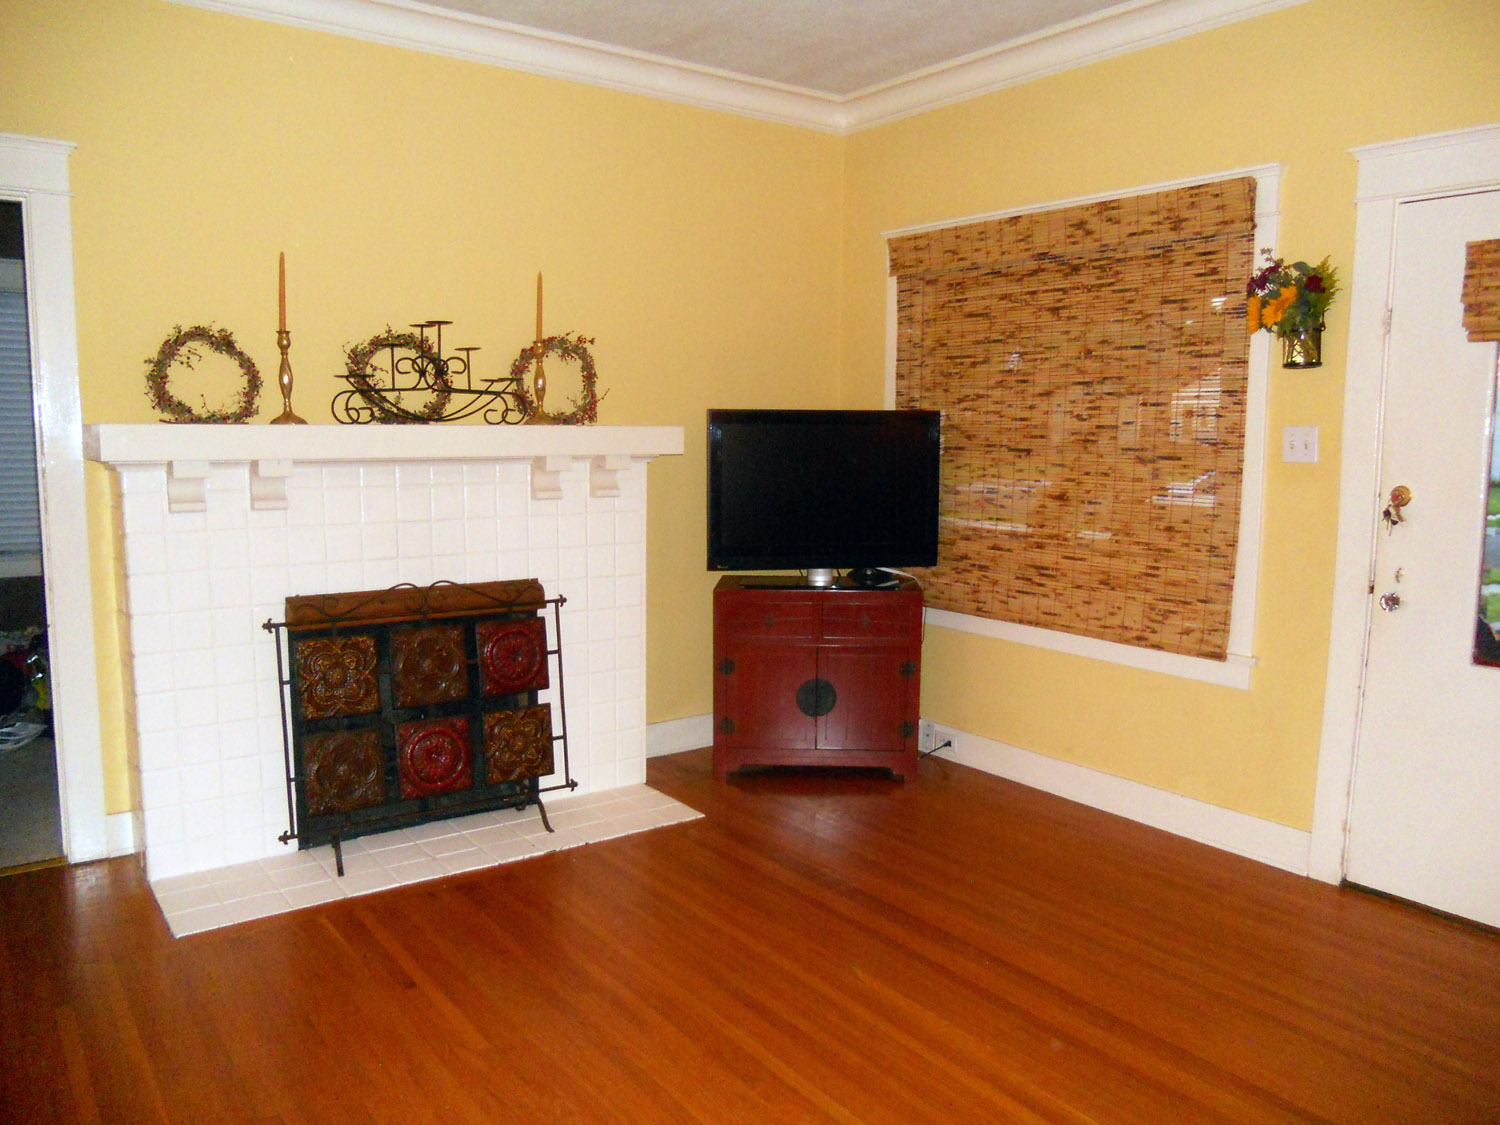 Gas Fireplace Facing Tara April Glatzel The Sister Team Info For The